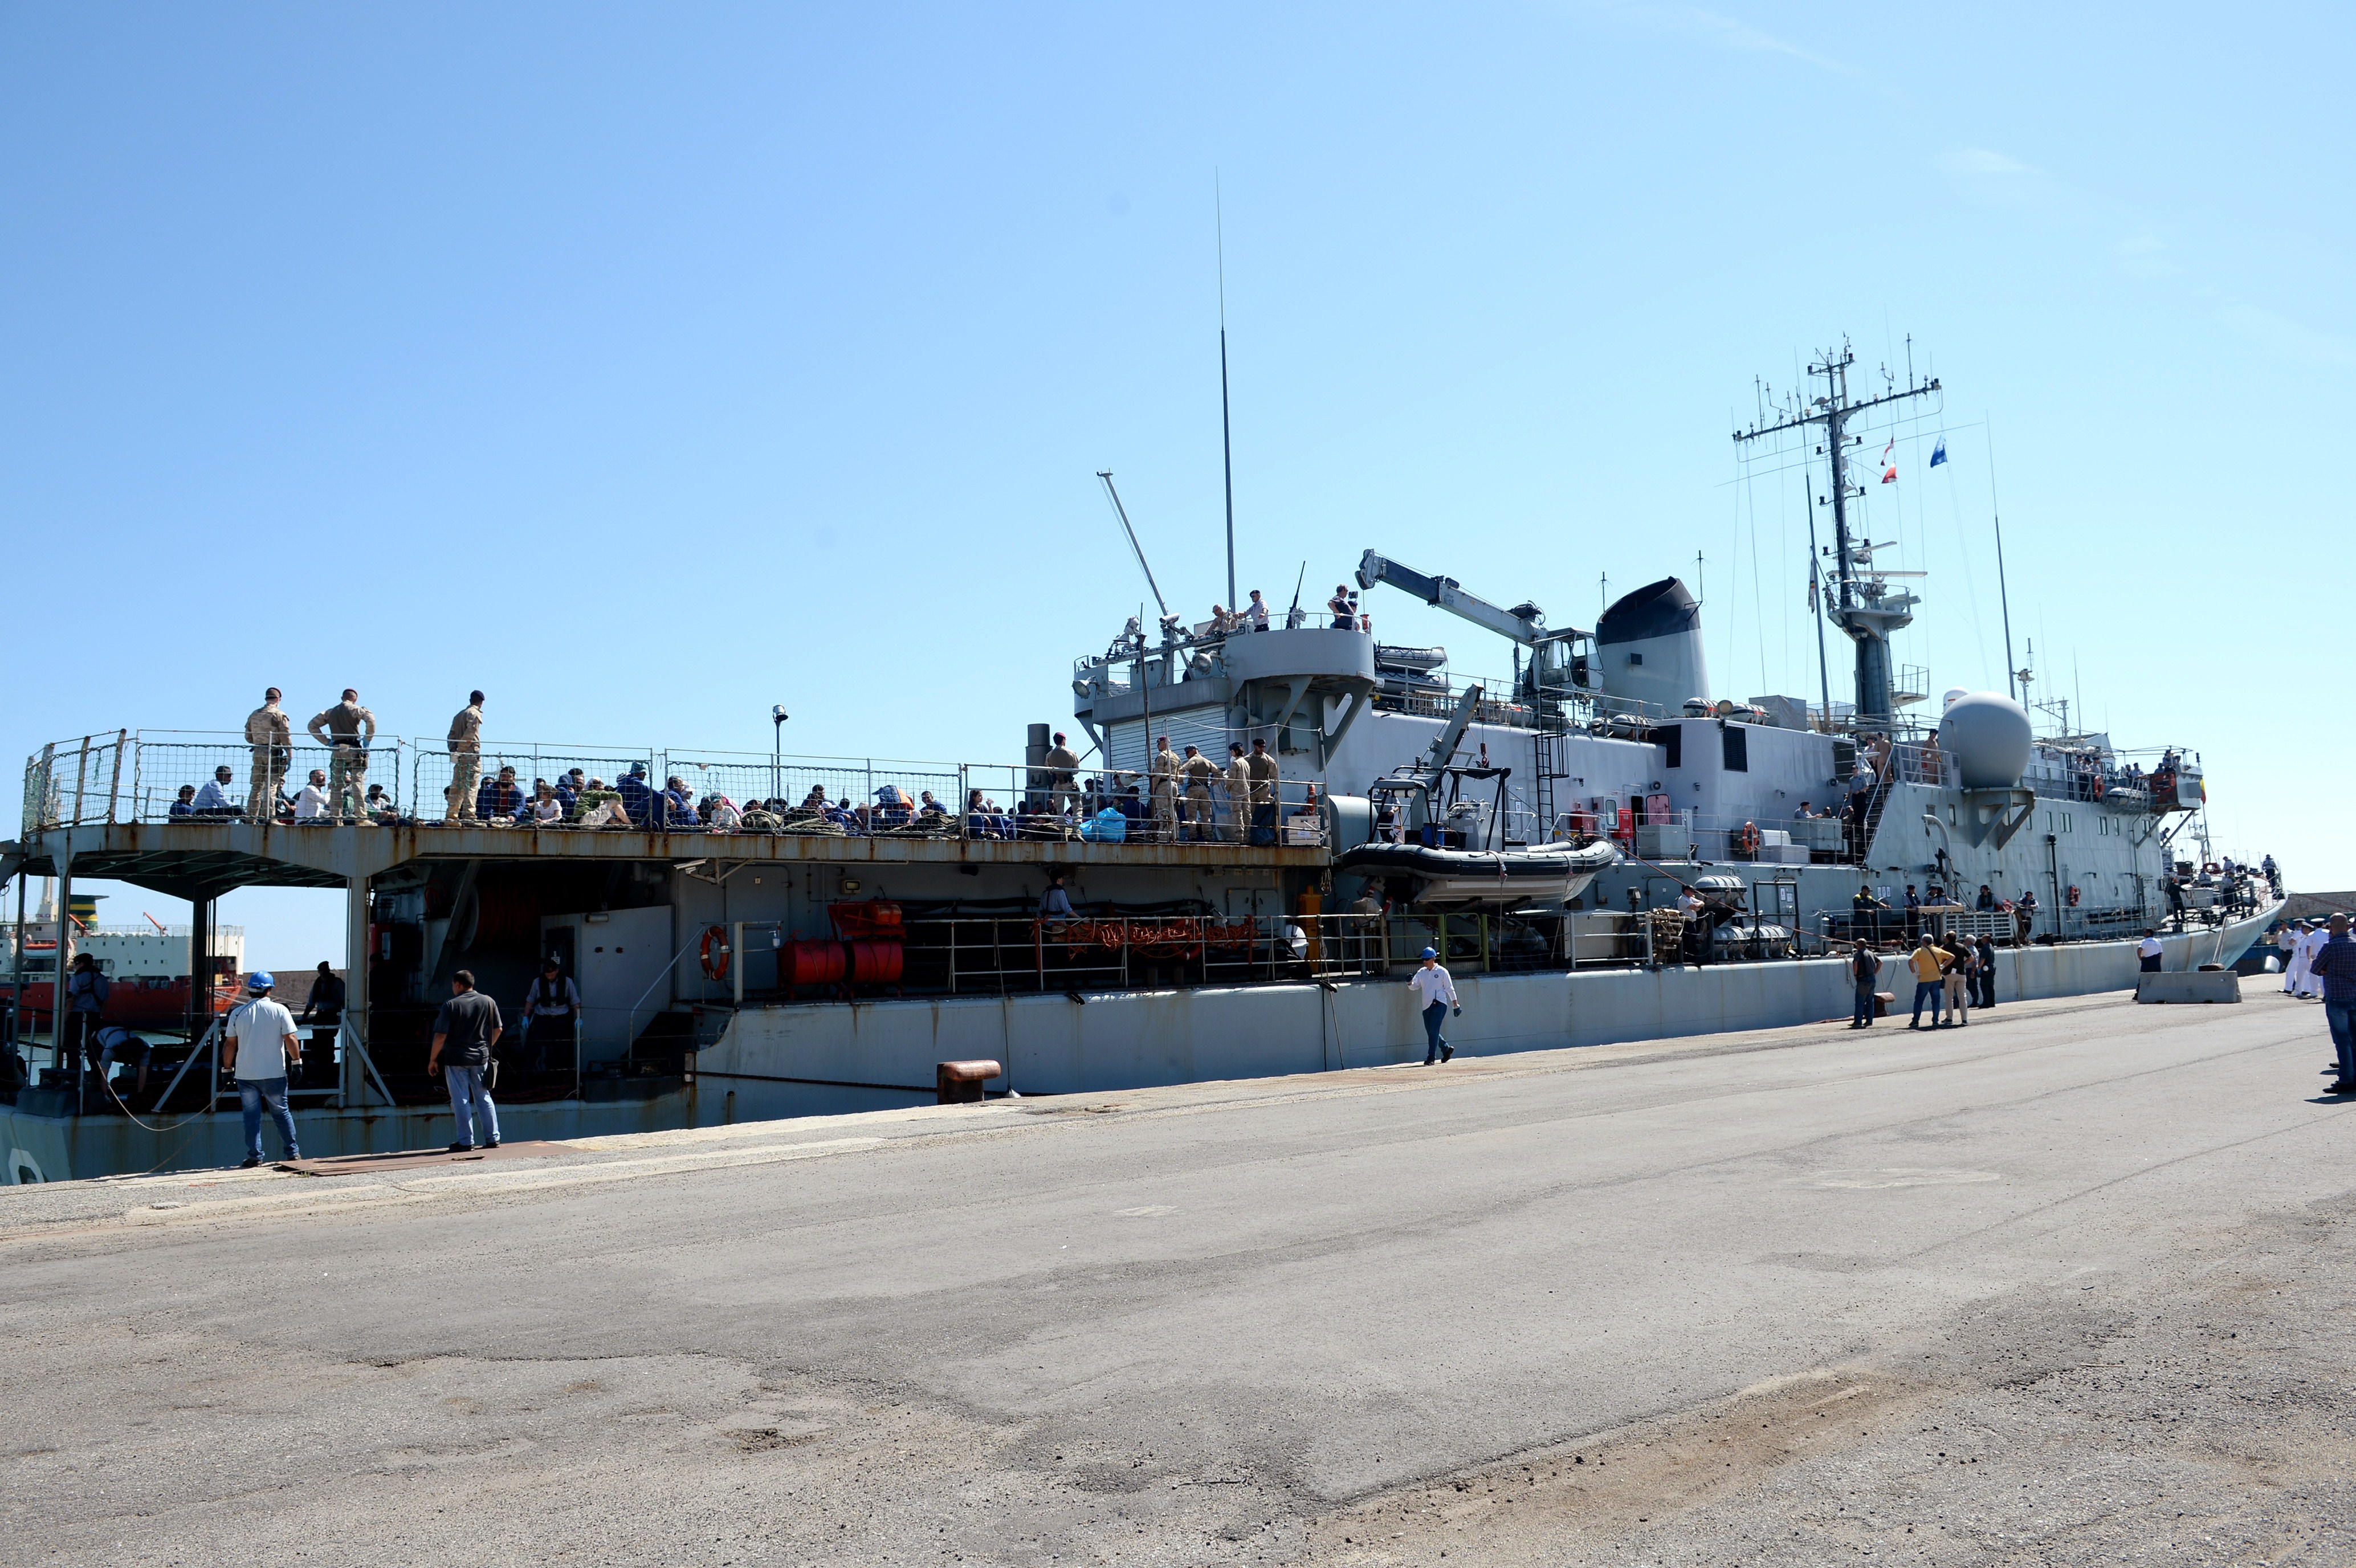 The Godetia logistical support ship of the Belgian Navy is docked on May 30, 2015 upon its arrival in the port of Crotone in the Italian southern region of Calabria after rescuing some 200 migrants, as part of Frontex-coordinated Operation Triton off the Italian coast. Photo by Alfonso di Vincenzo/Getty Images.